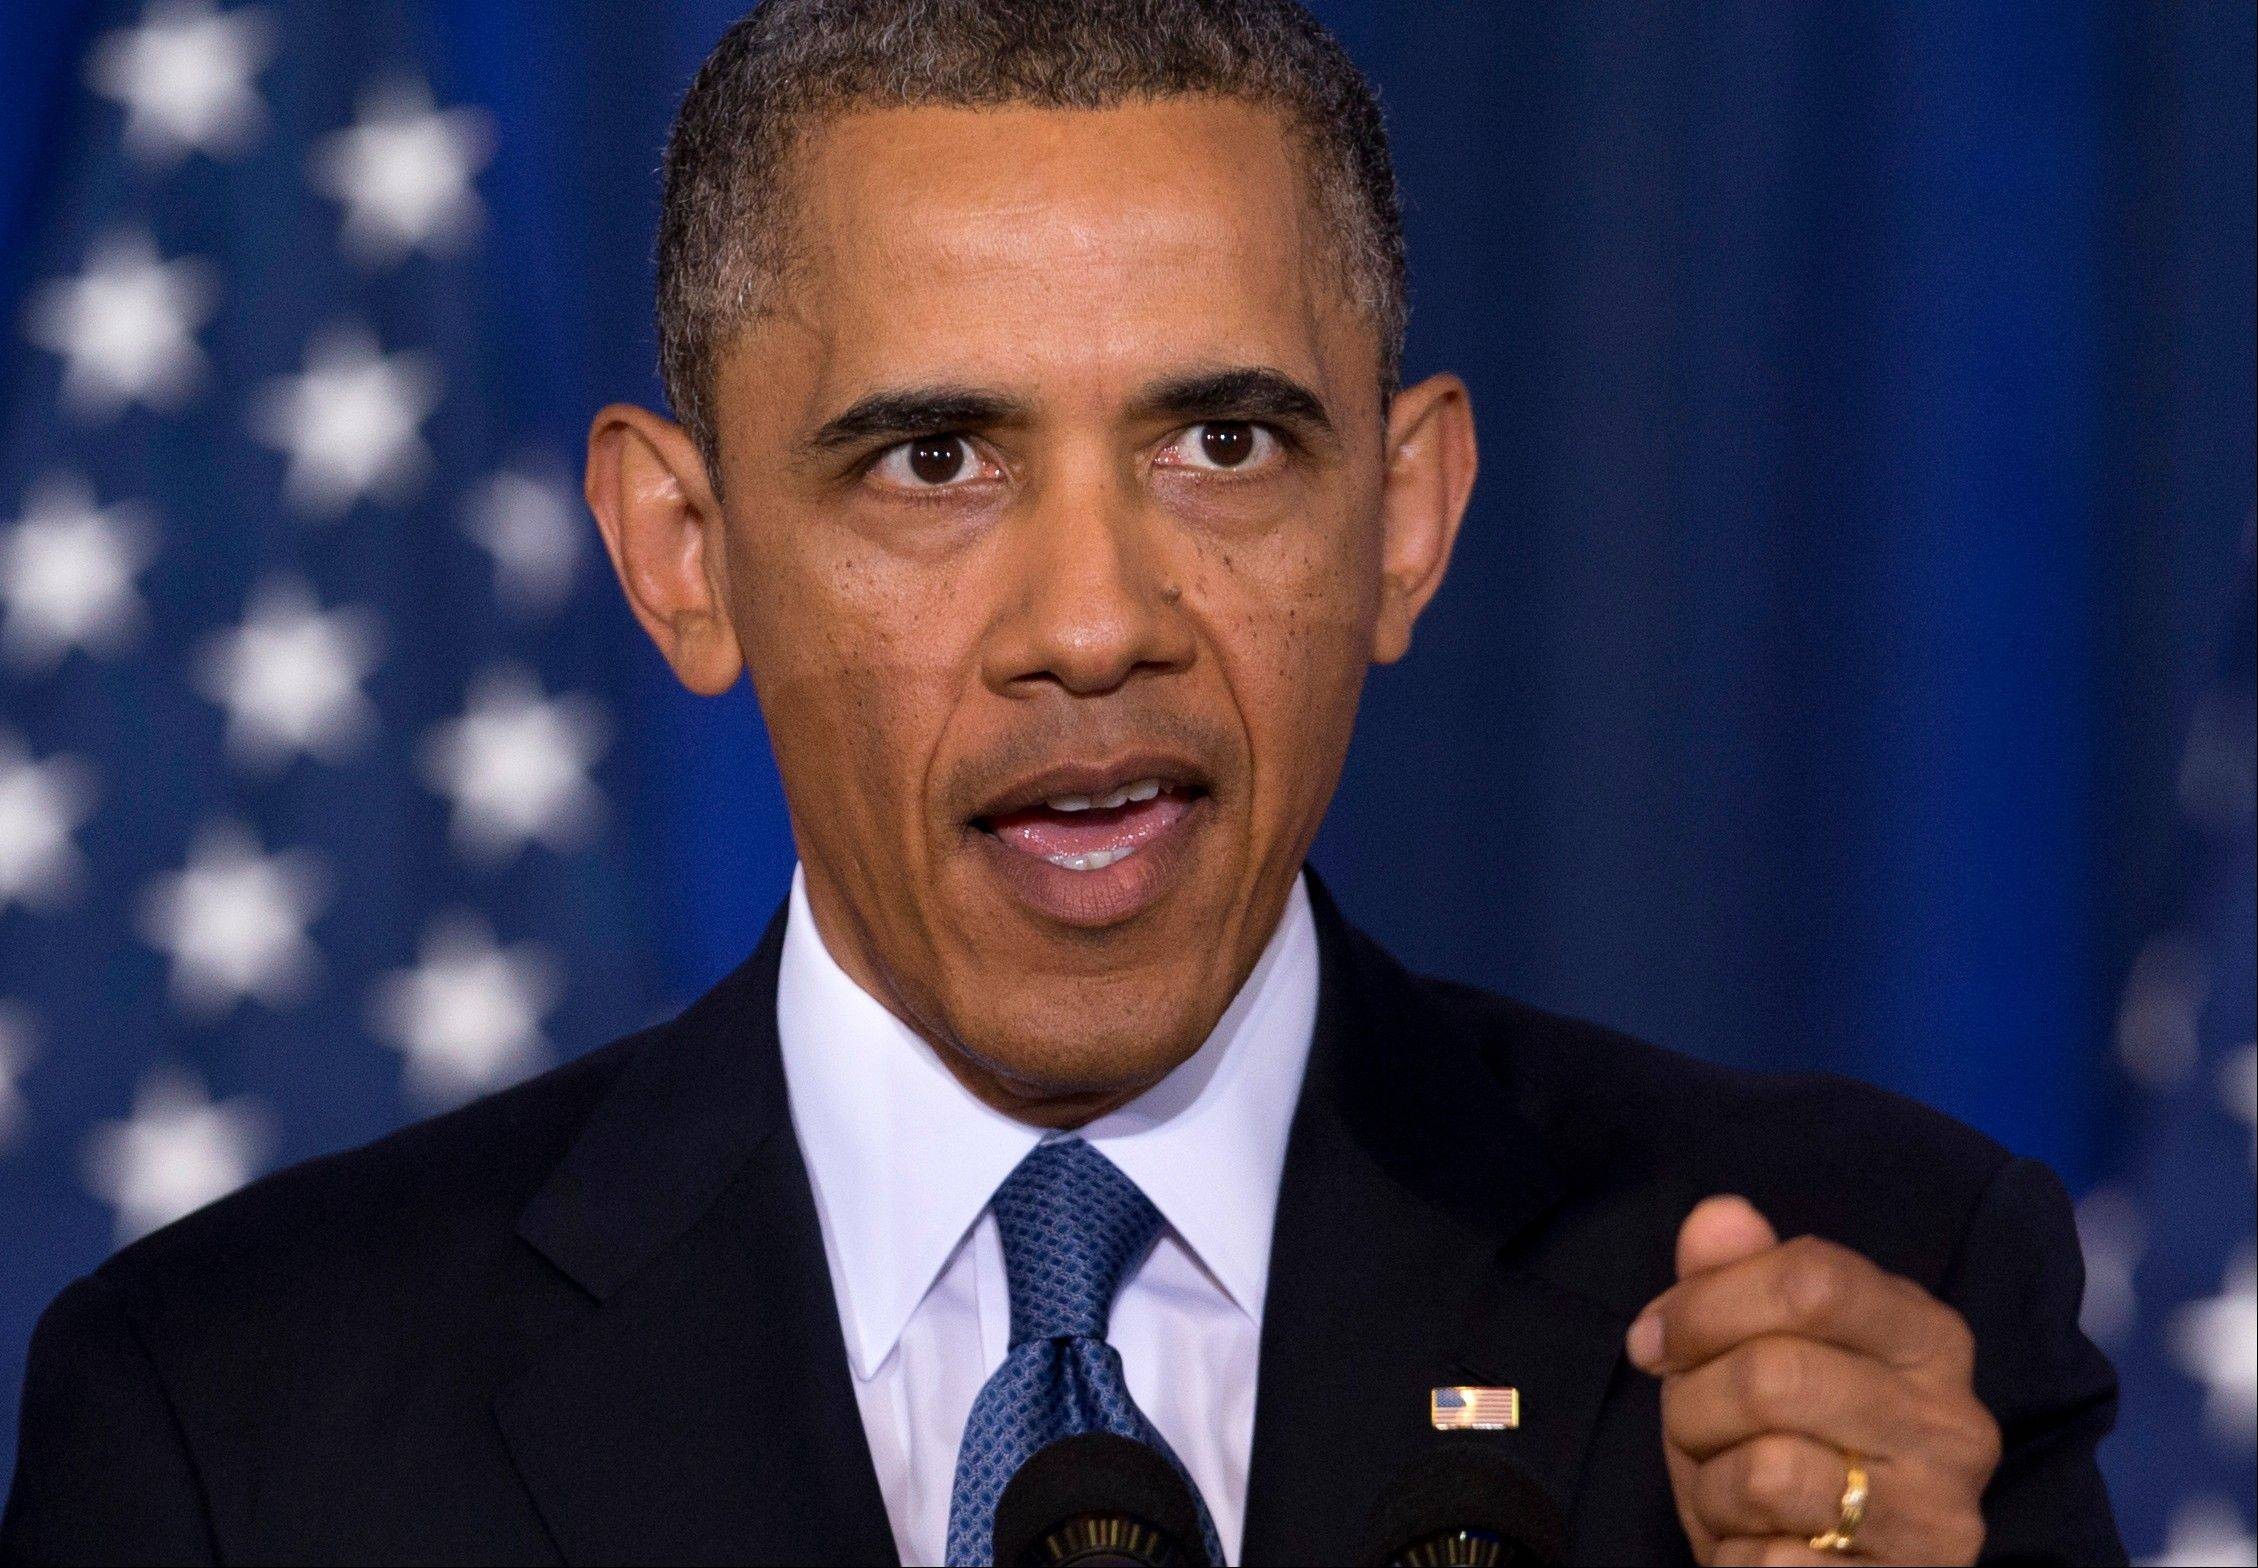 Obama balances threats against Americans' rights